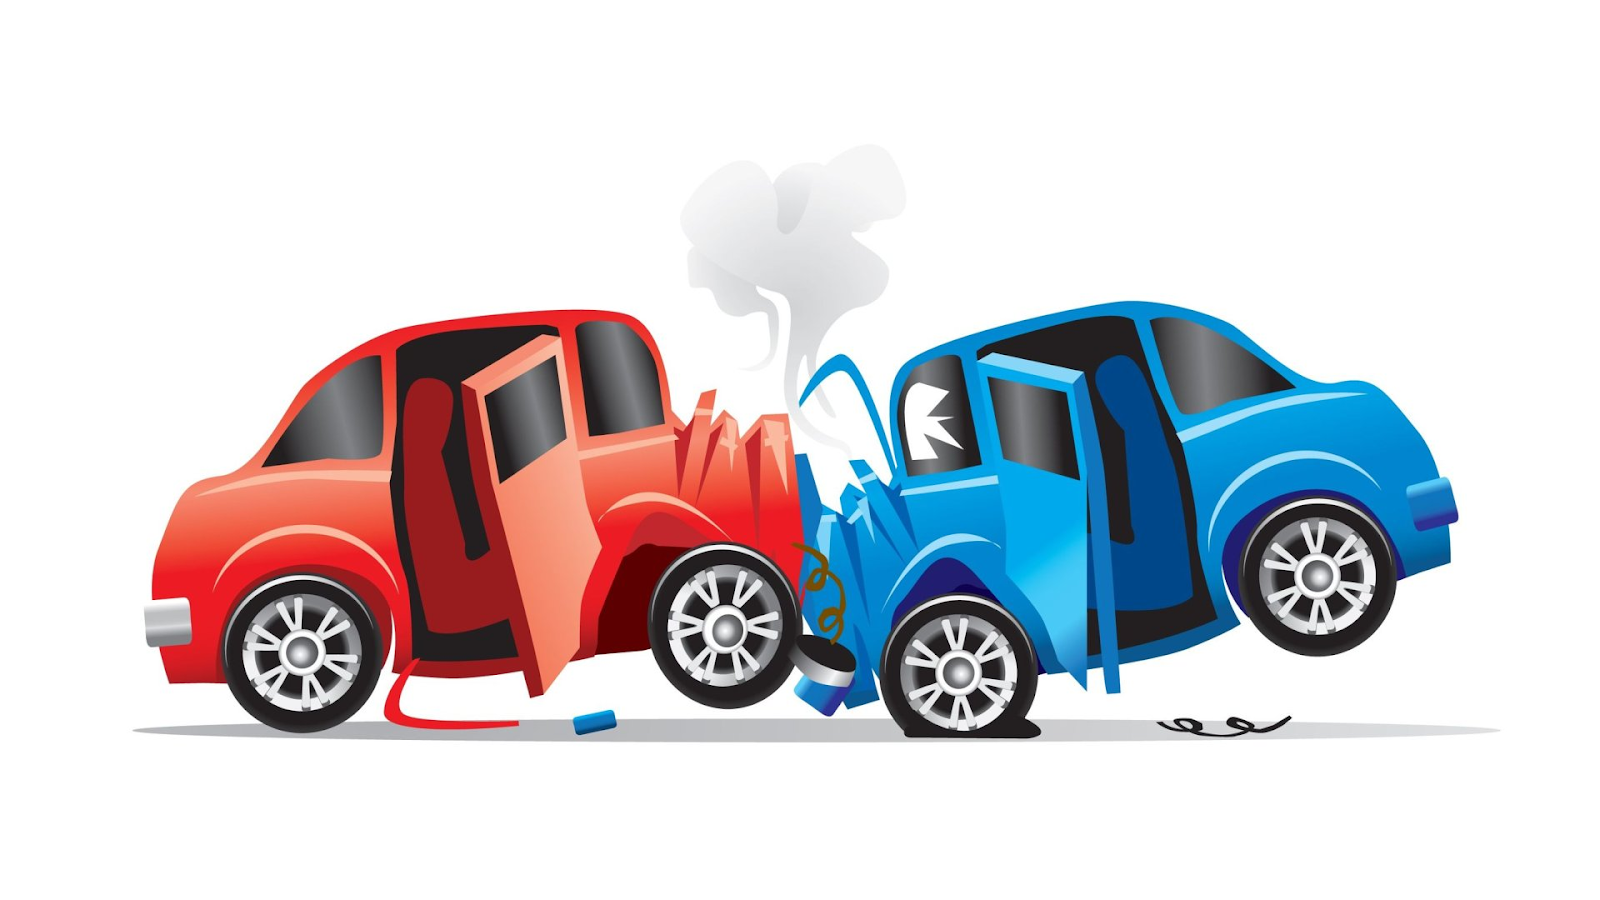 5 Most Common Types of Auto Accidents and How to Avoid Them